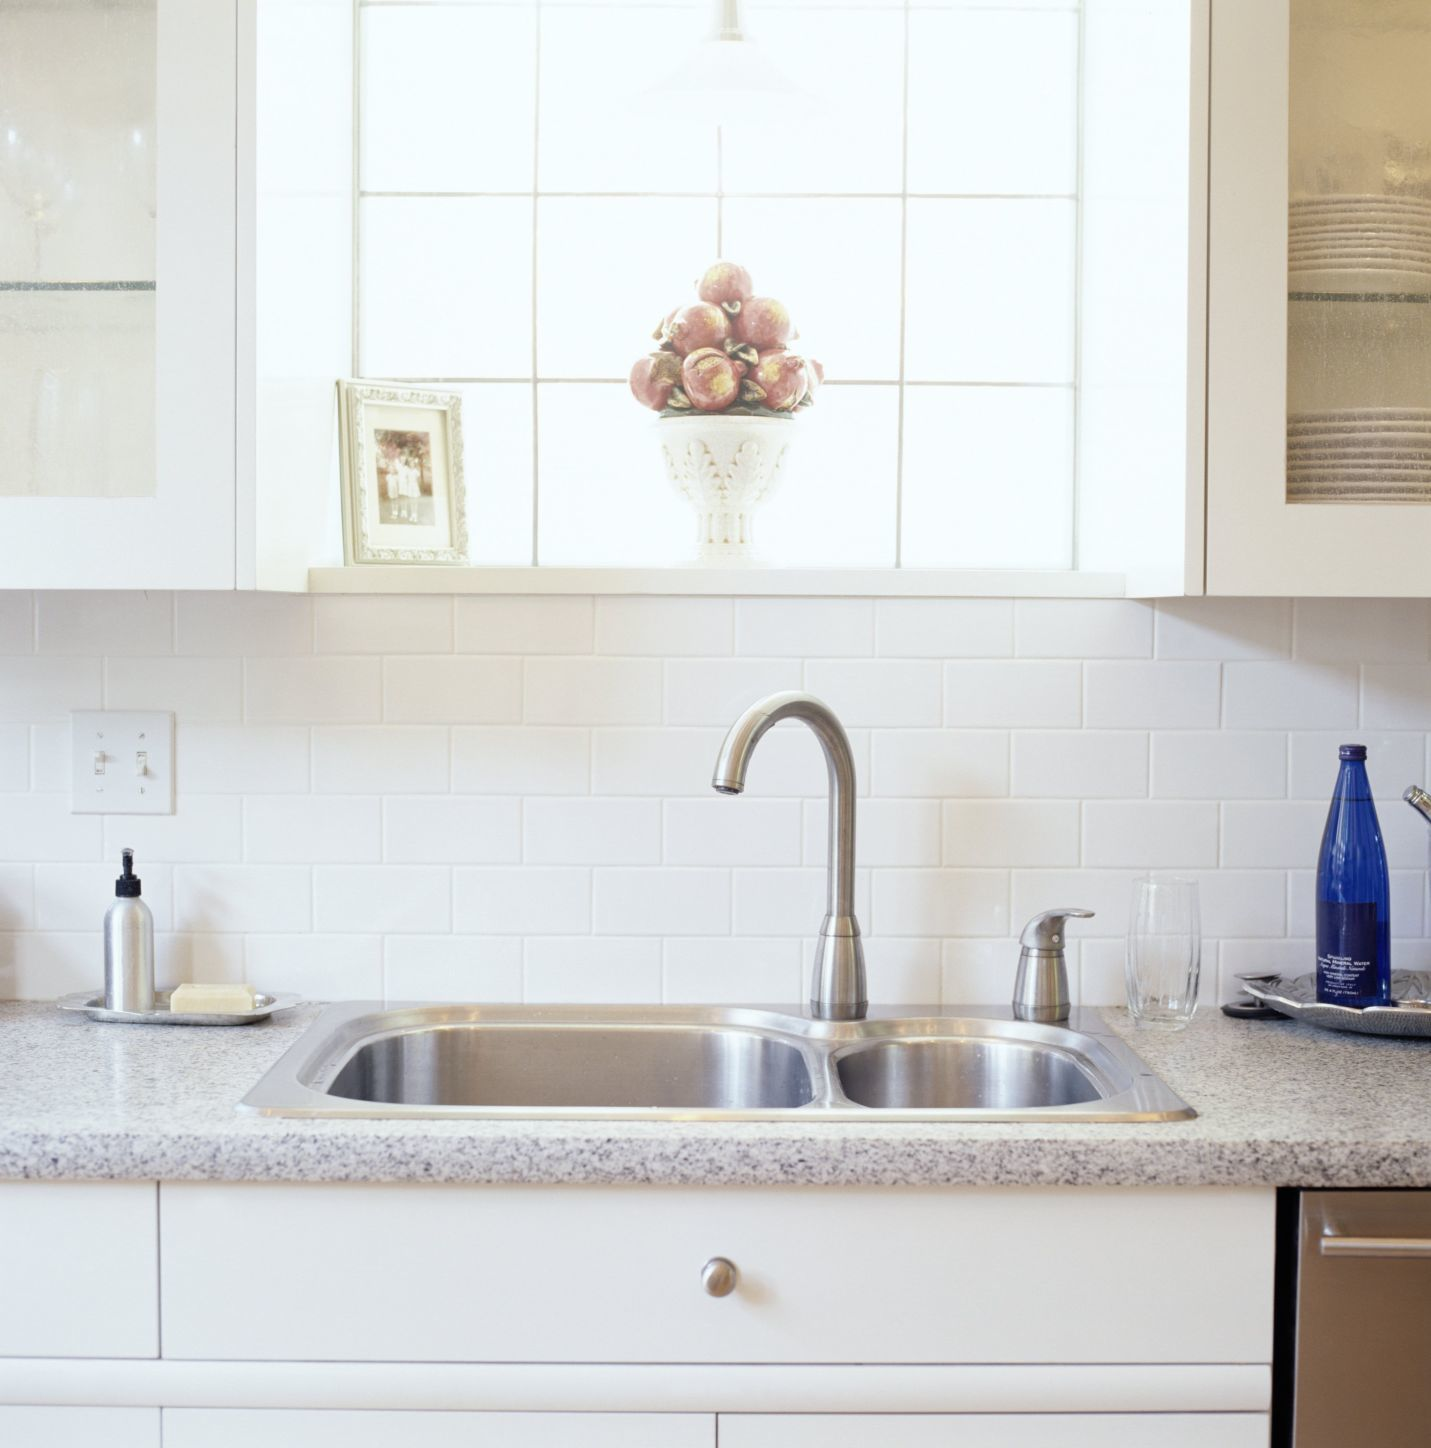 Merveilleux Installing A Garbage Disposal Adds A Tremendous Benefit To The Usefulness  Of Your Kitchen Sink And Creates Less Worry About What Makes It Down The  Drain.